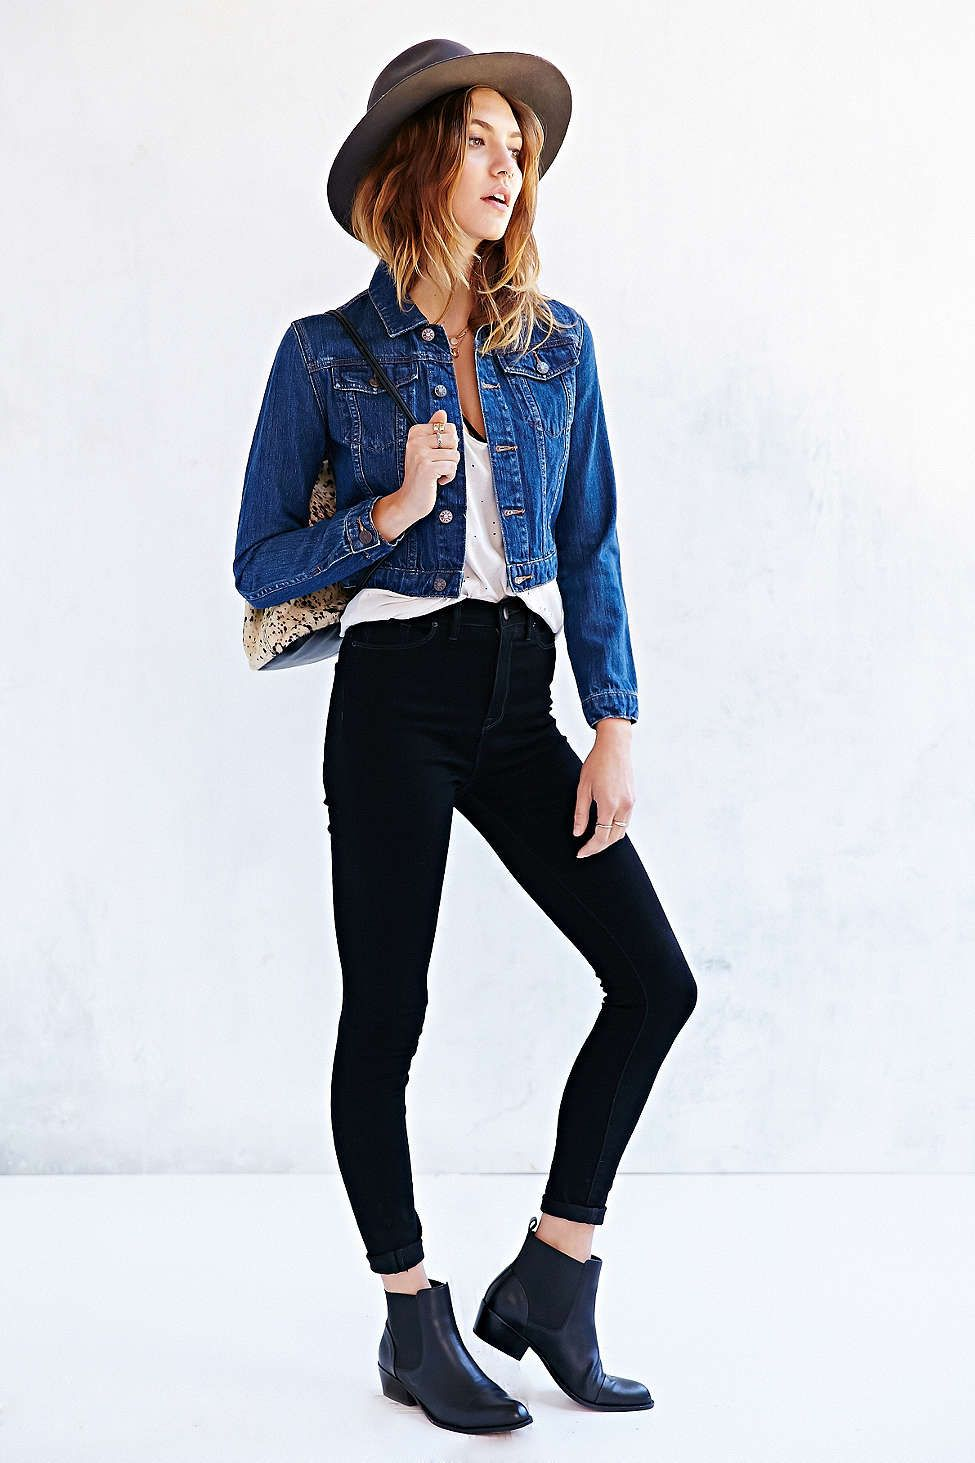 Bdg Cropped Denim Trucker Jacket Urban Outfitters Casual Outfits Jacket Outfits Fashion [ 1463 x 975 Pixel ]